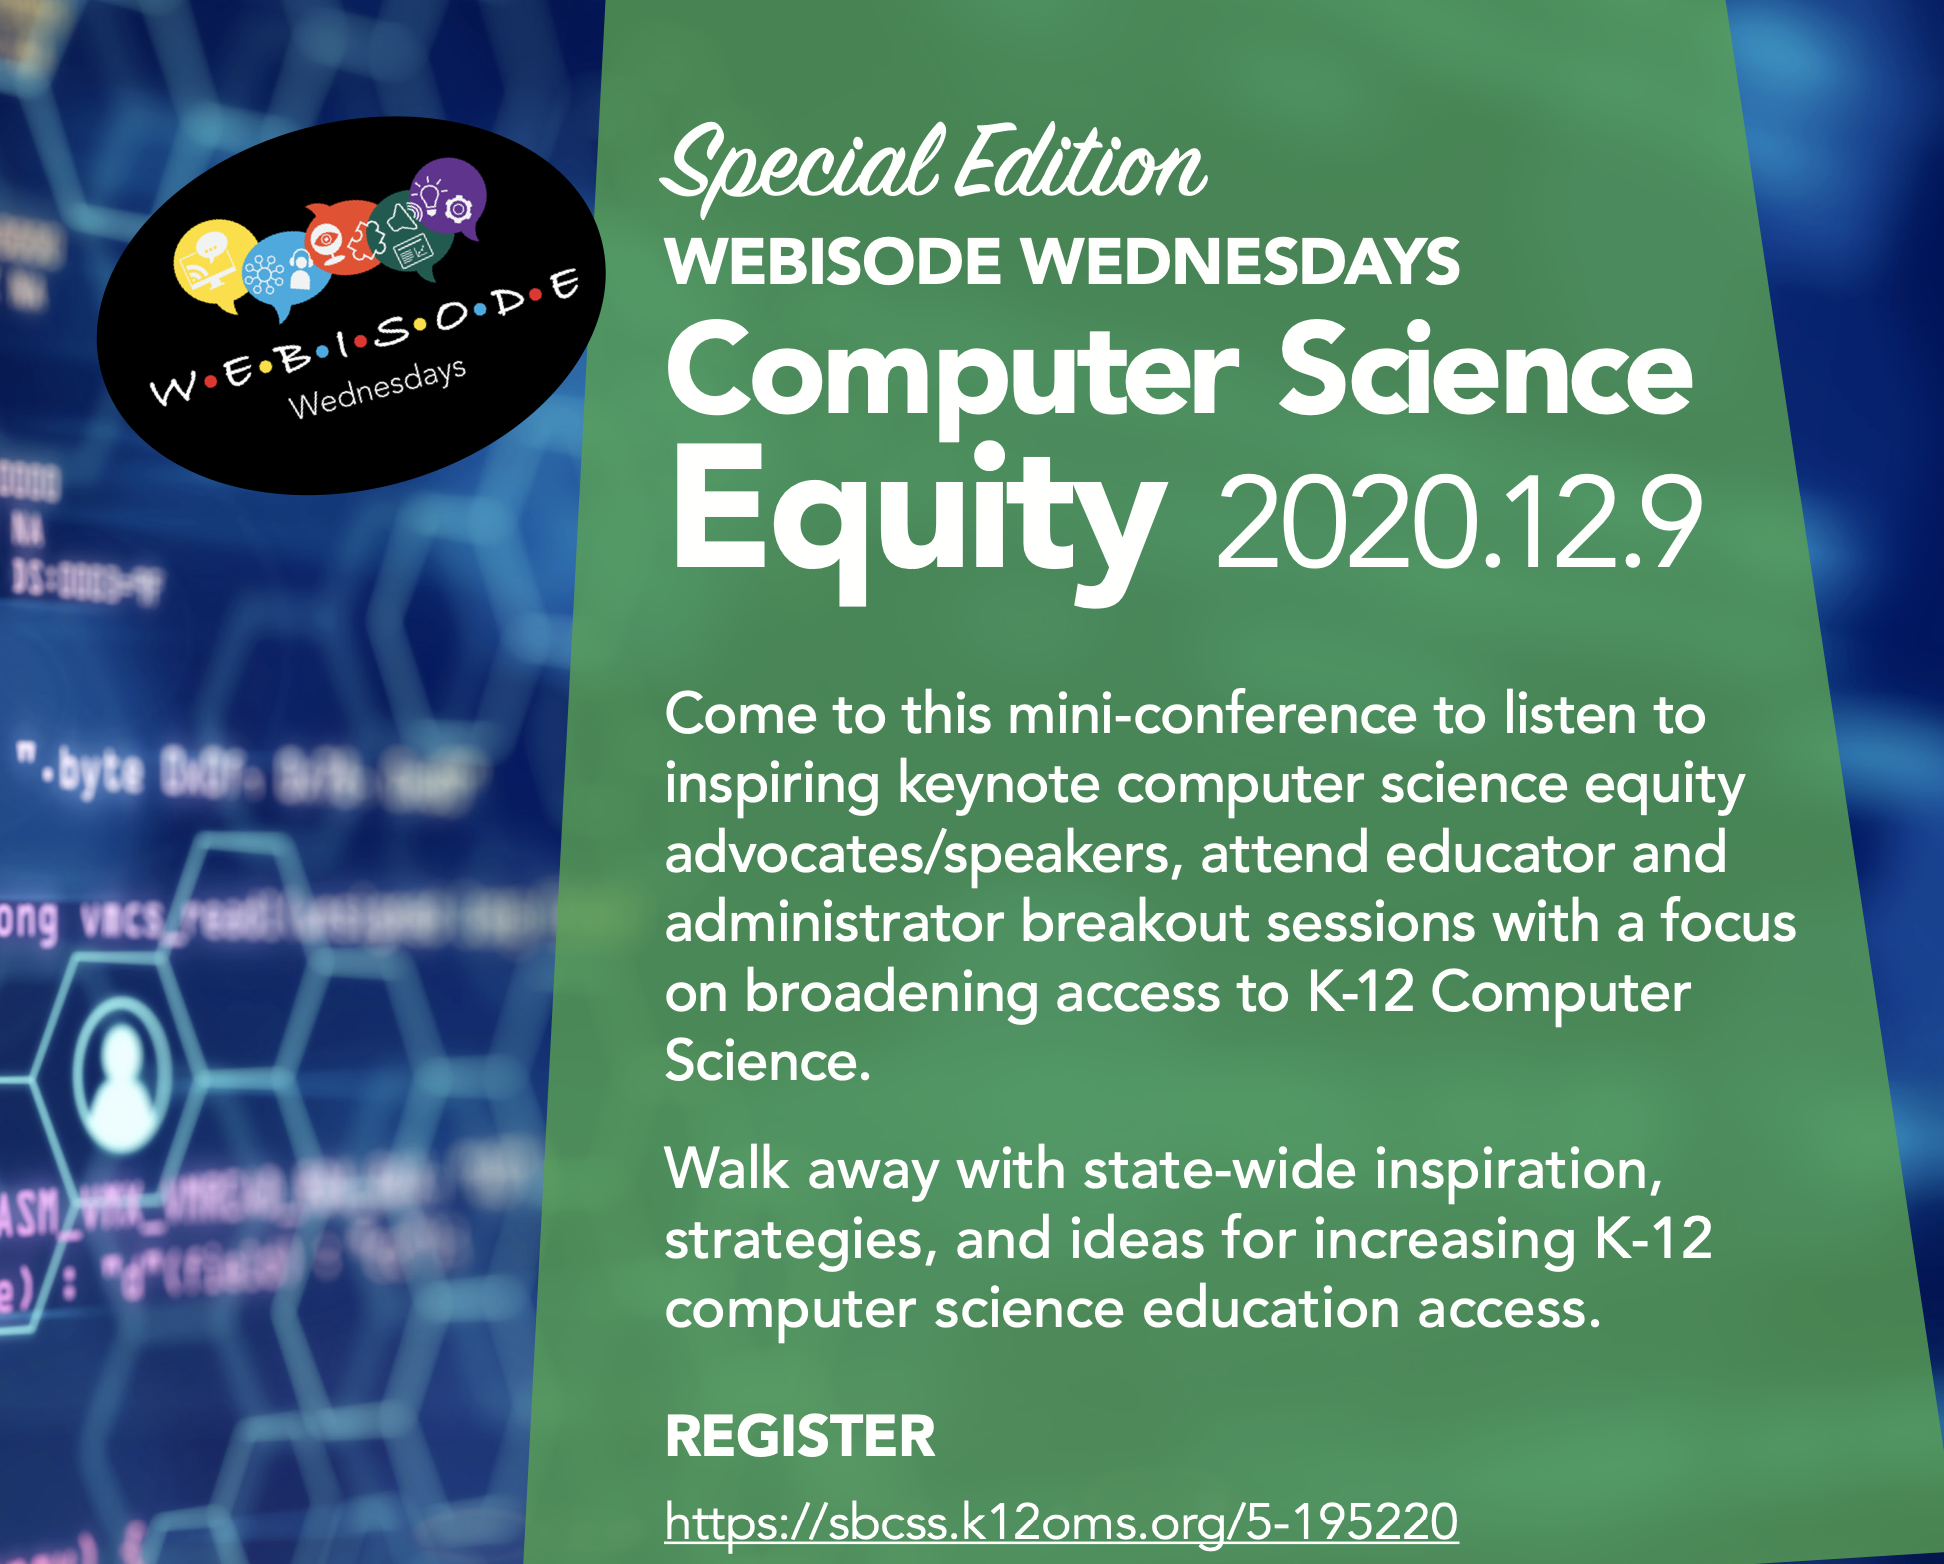 Computer Science Equity